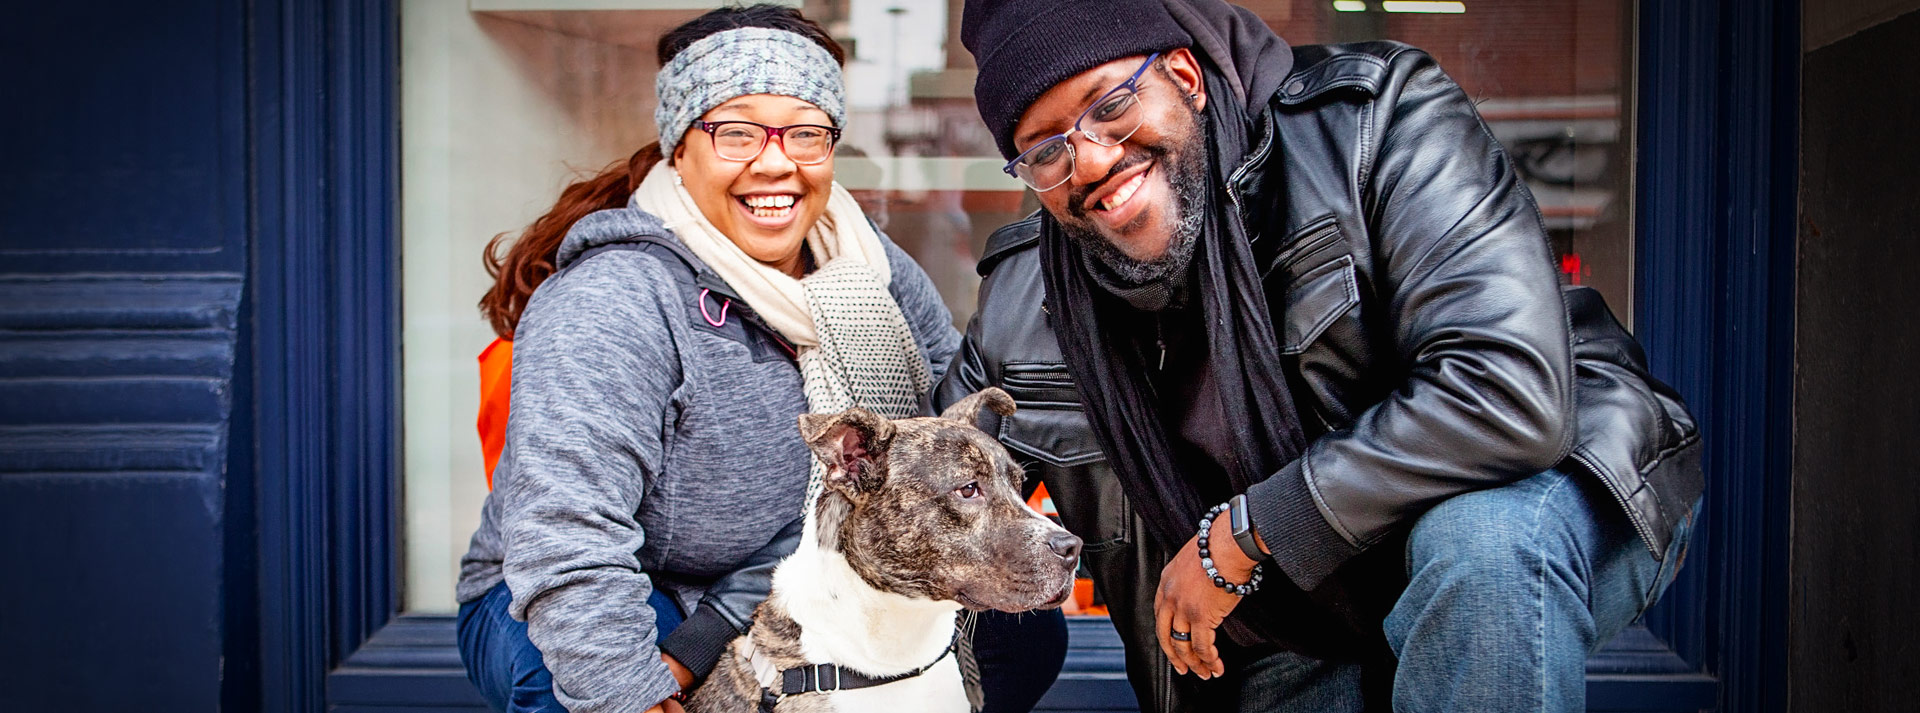 Woman in gray jacket and man in black jacket squatting next to white and brindle pit bull type dog